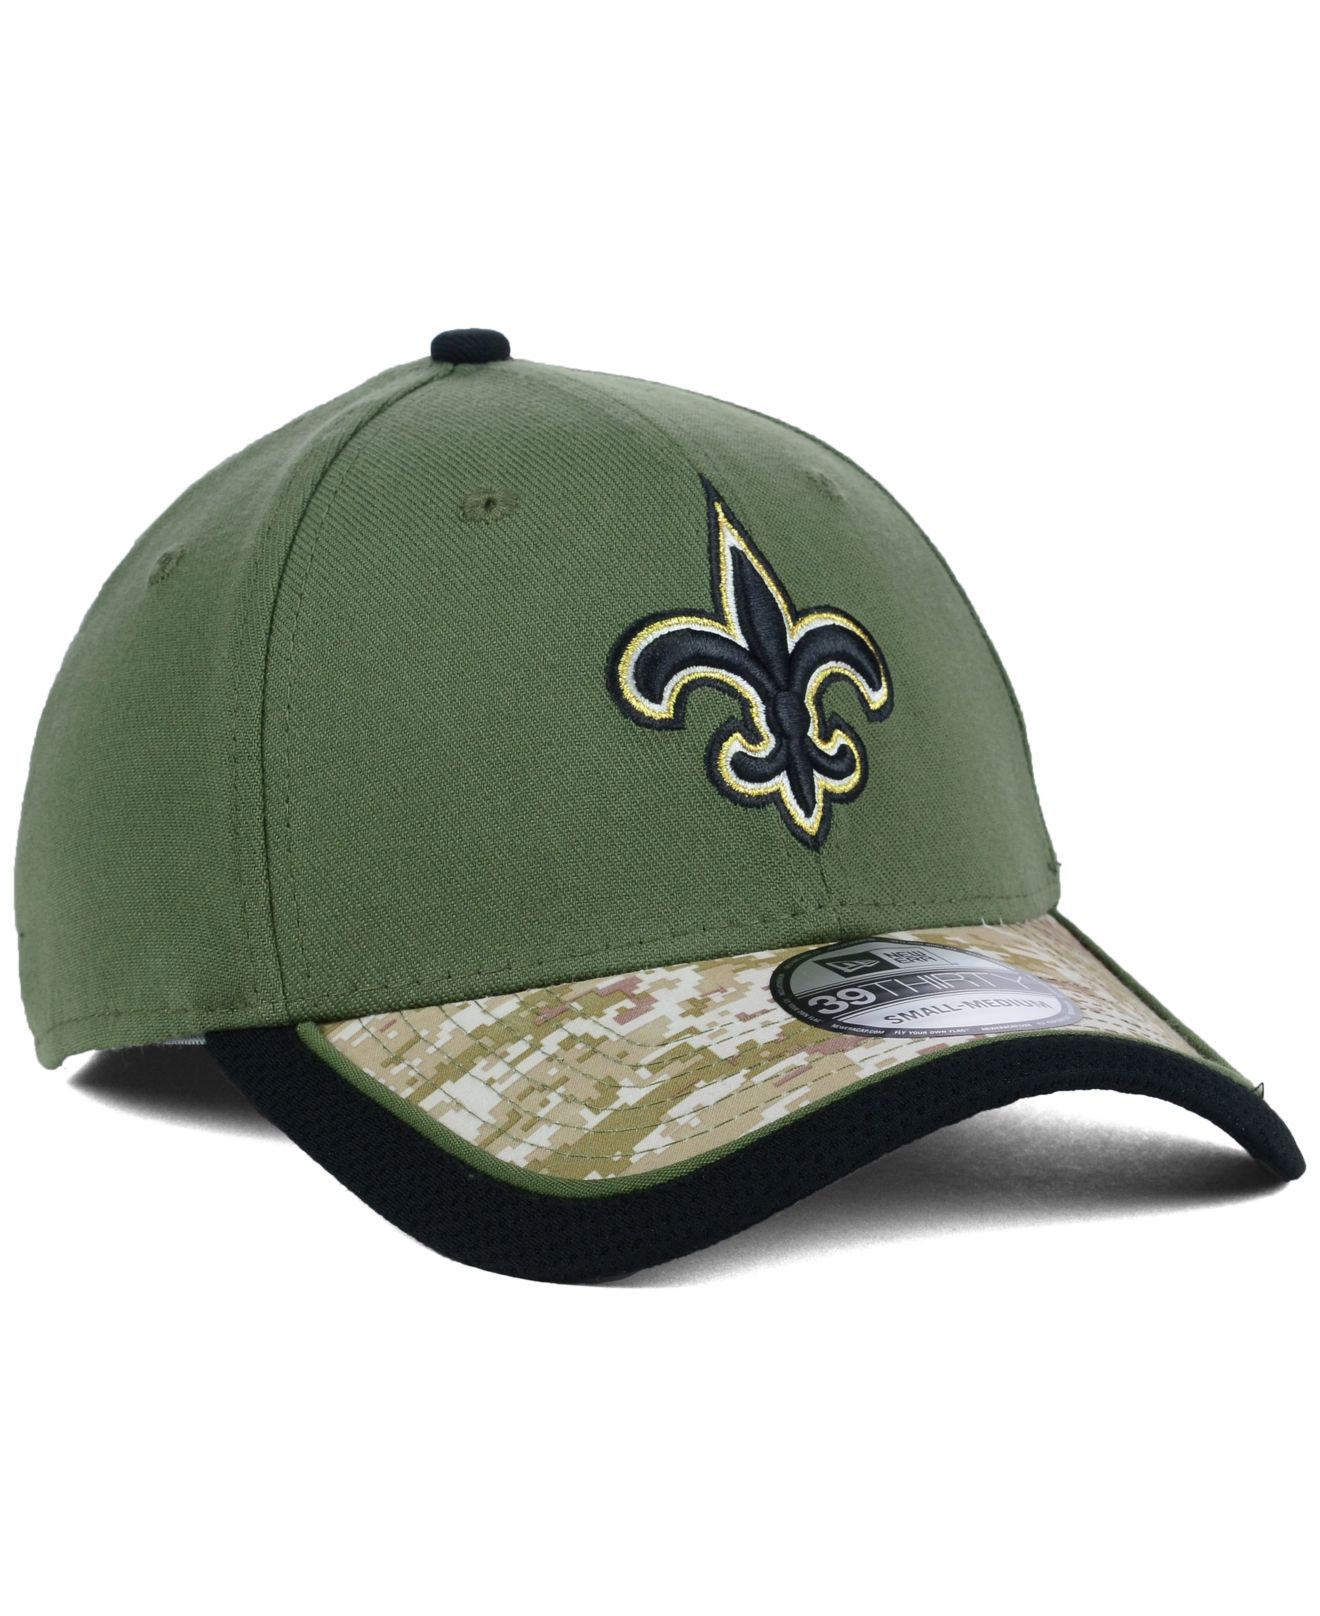 7d2423603 Lyst - Ktz New Orleans Saints Salute To Service 39Thirty Cap in ...